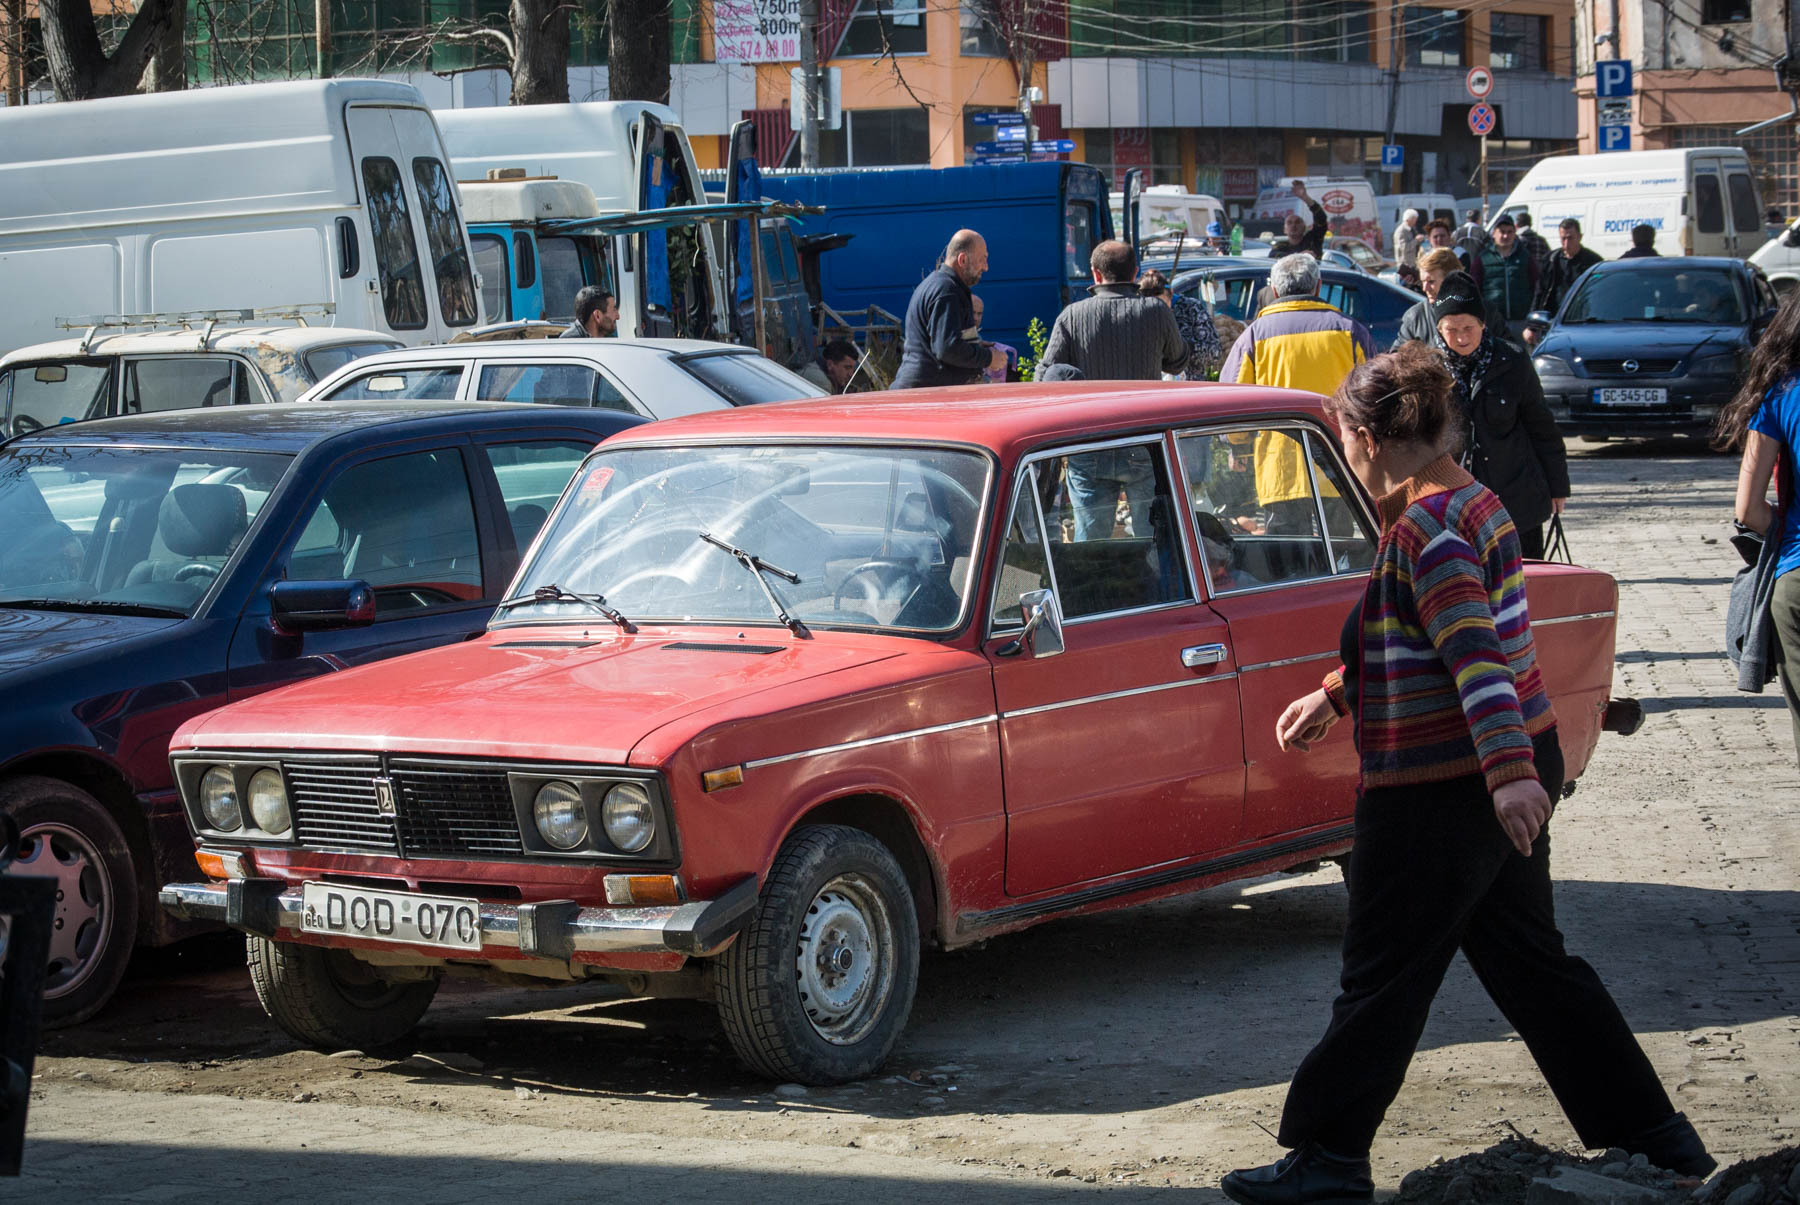 A Lada car in Kutasi, Georgia.